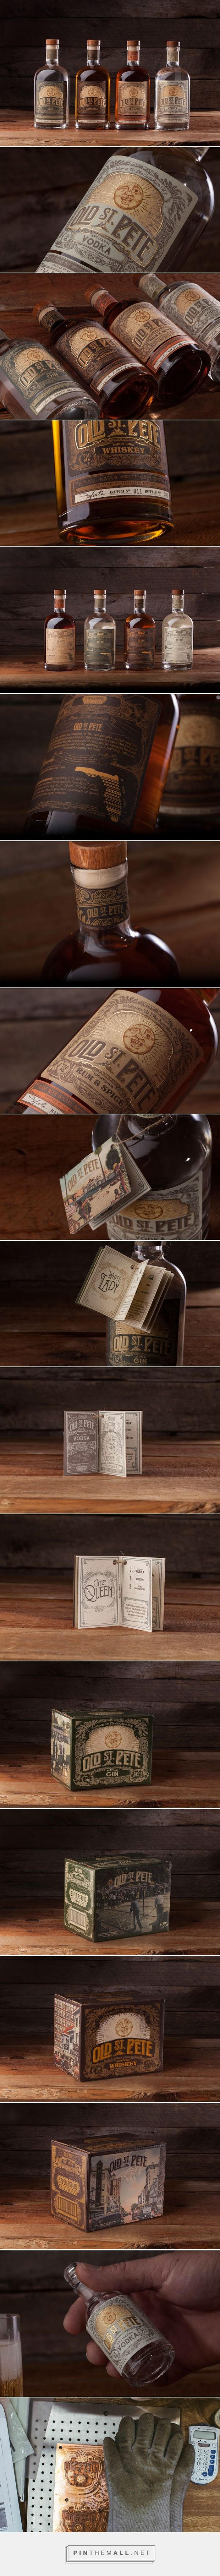 Old St. Pete Craft Spirits Packaging designed by Dunn&Co.​ - http://www.packagingoftheworld.com/2015/11/old-st-pete-craft-spirits.html